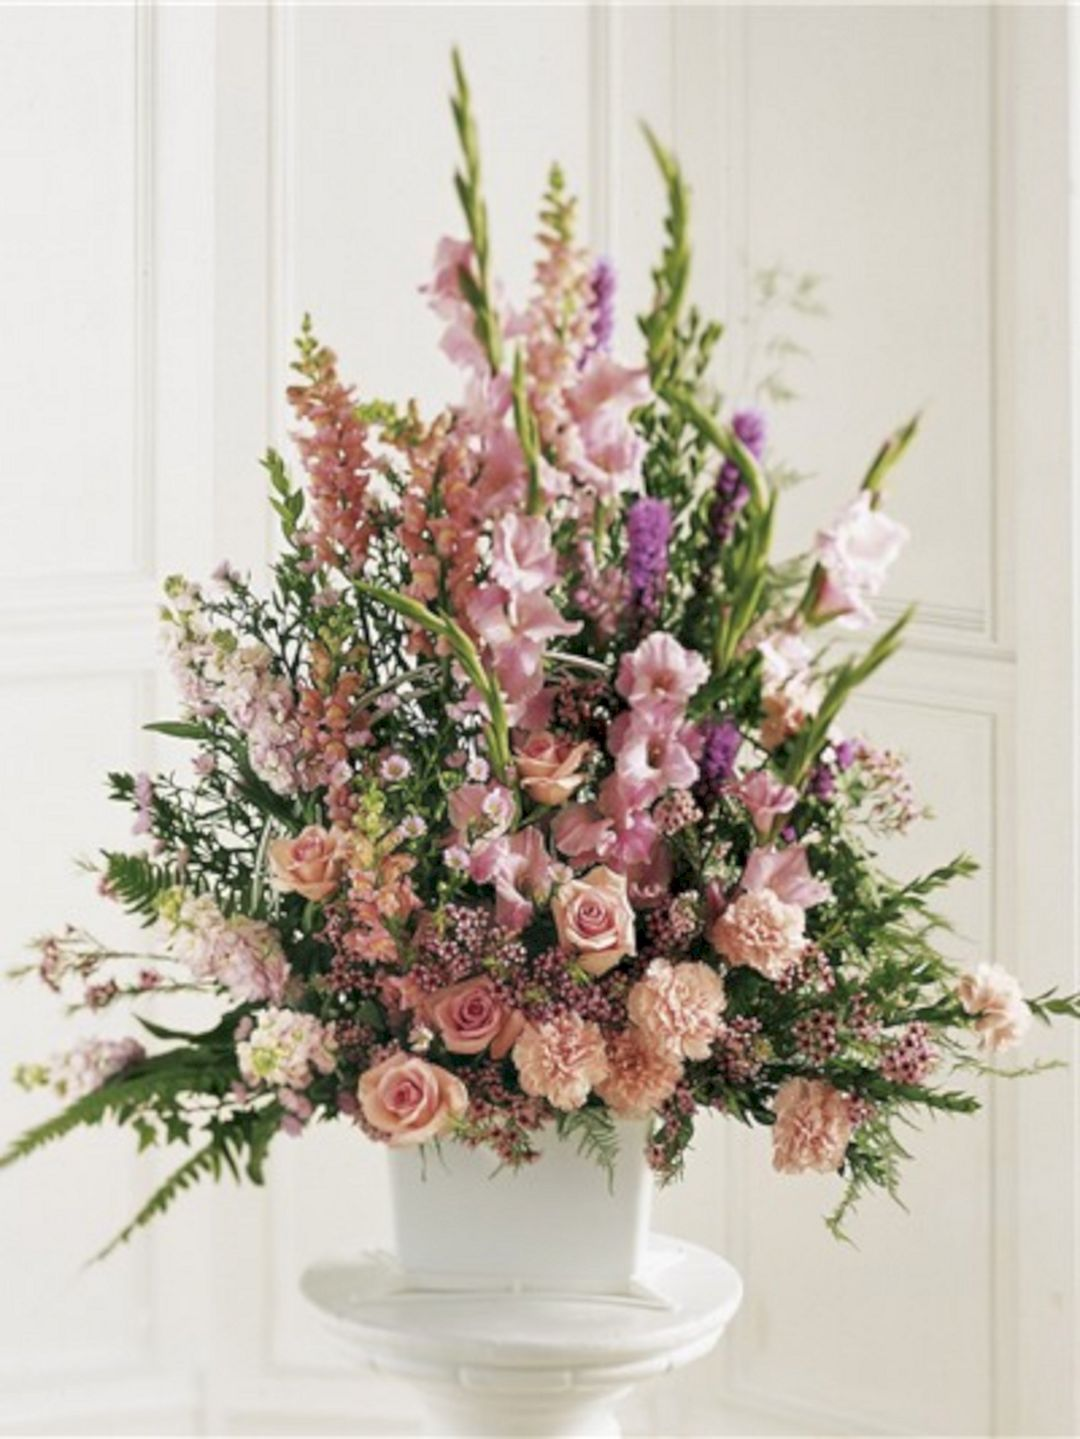 45 beautiful funeral arrangements ideas easy to make it funeral a beautiful sympathy arrangement featuring flowers in many shades of pink can be sent same day flower delivery izmirmasajfo Gallery